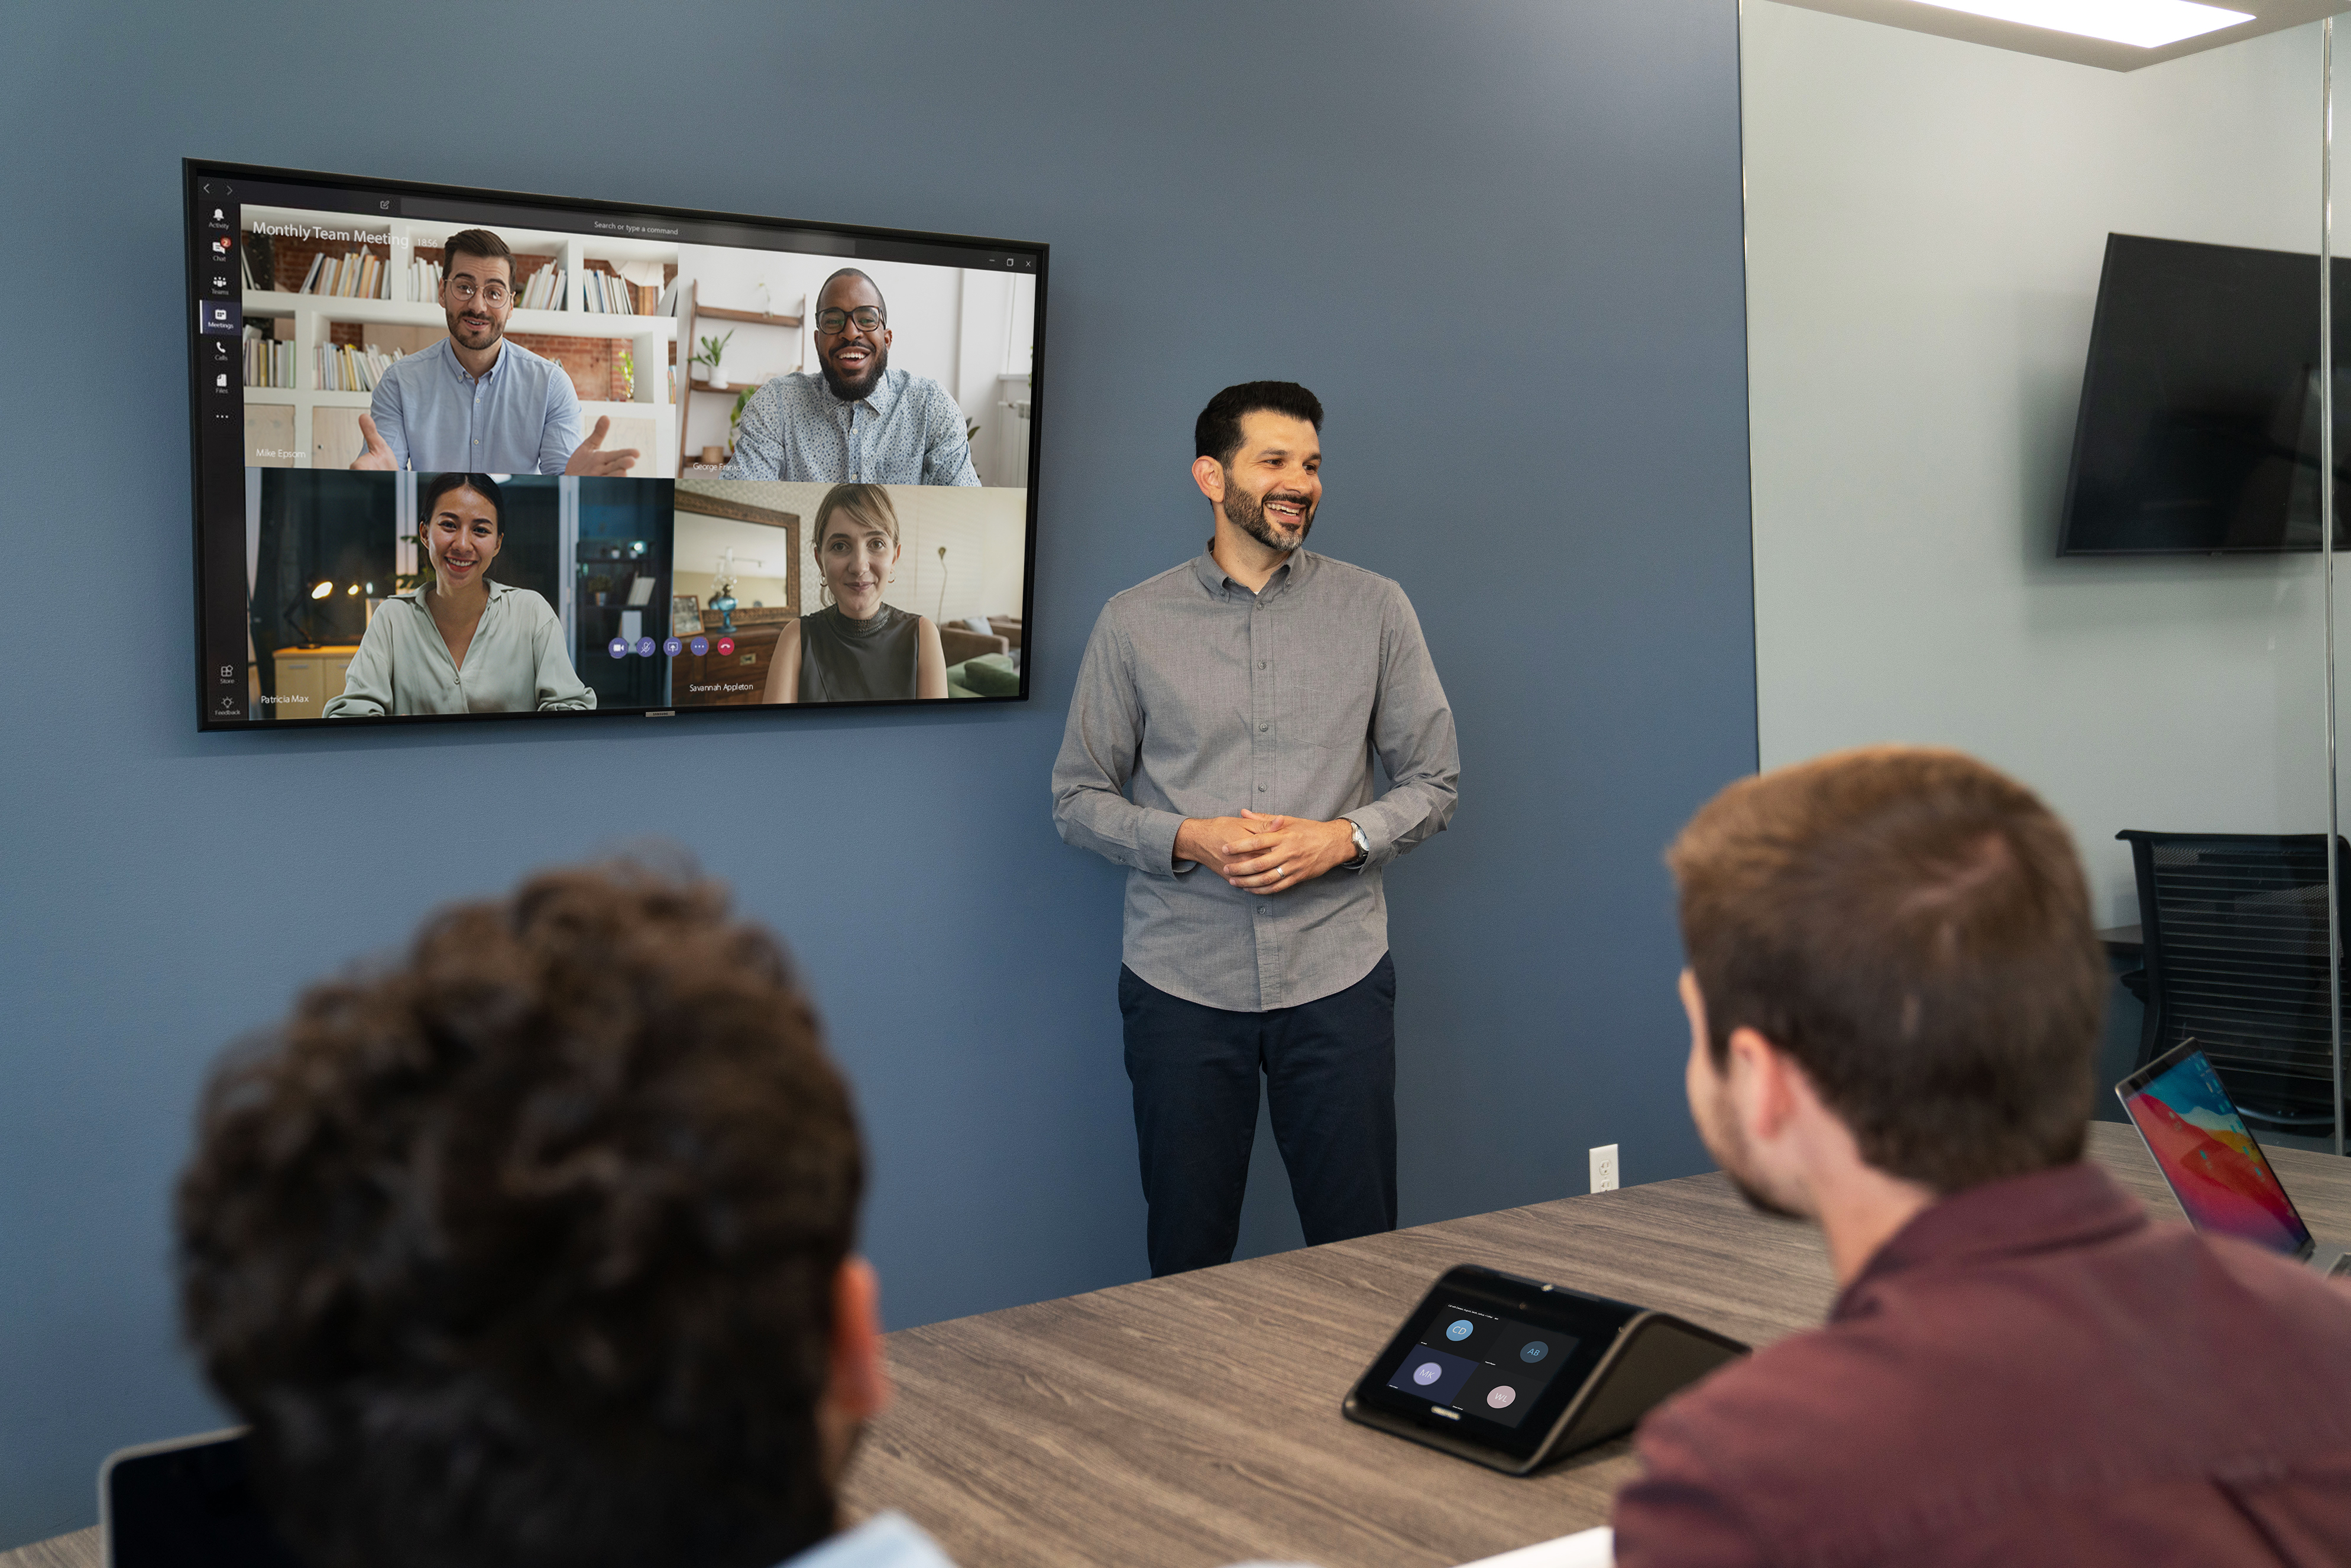 Meeting room video chat on wall screen-1